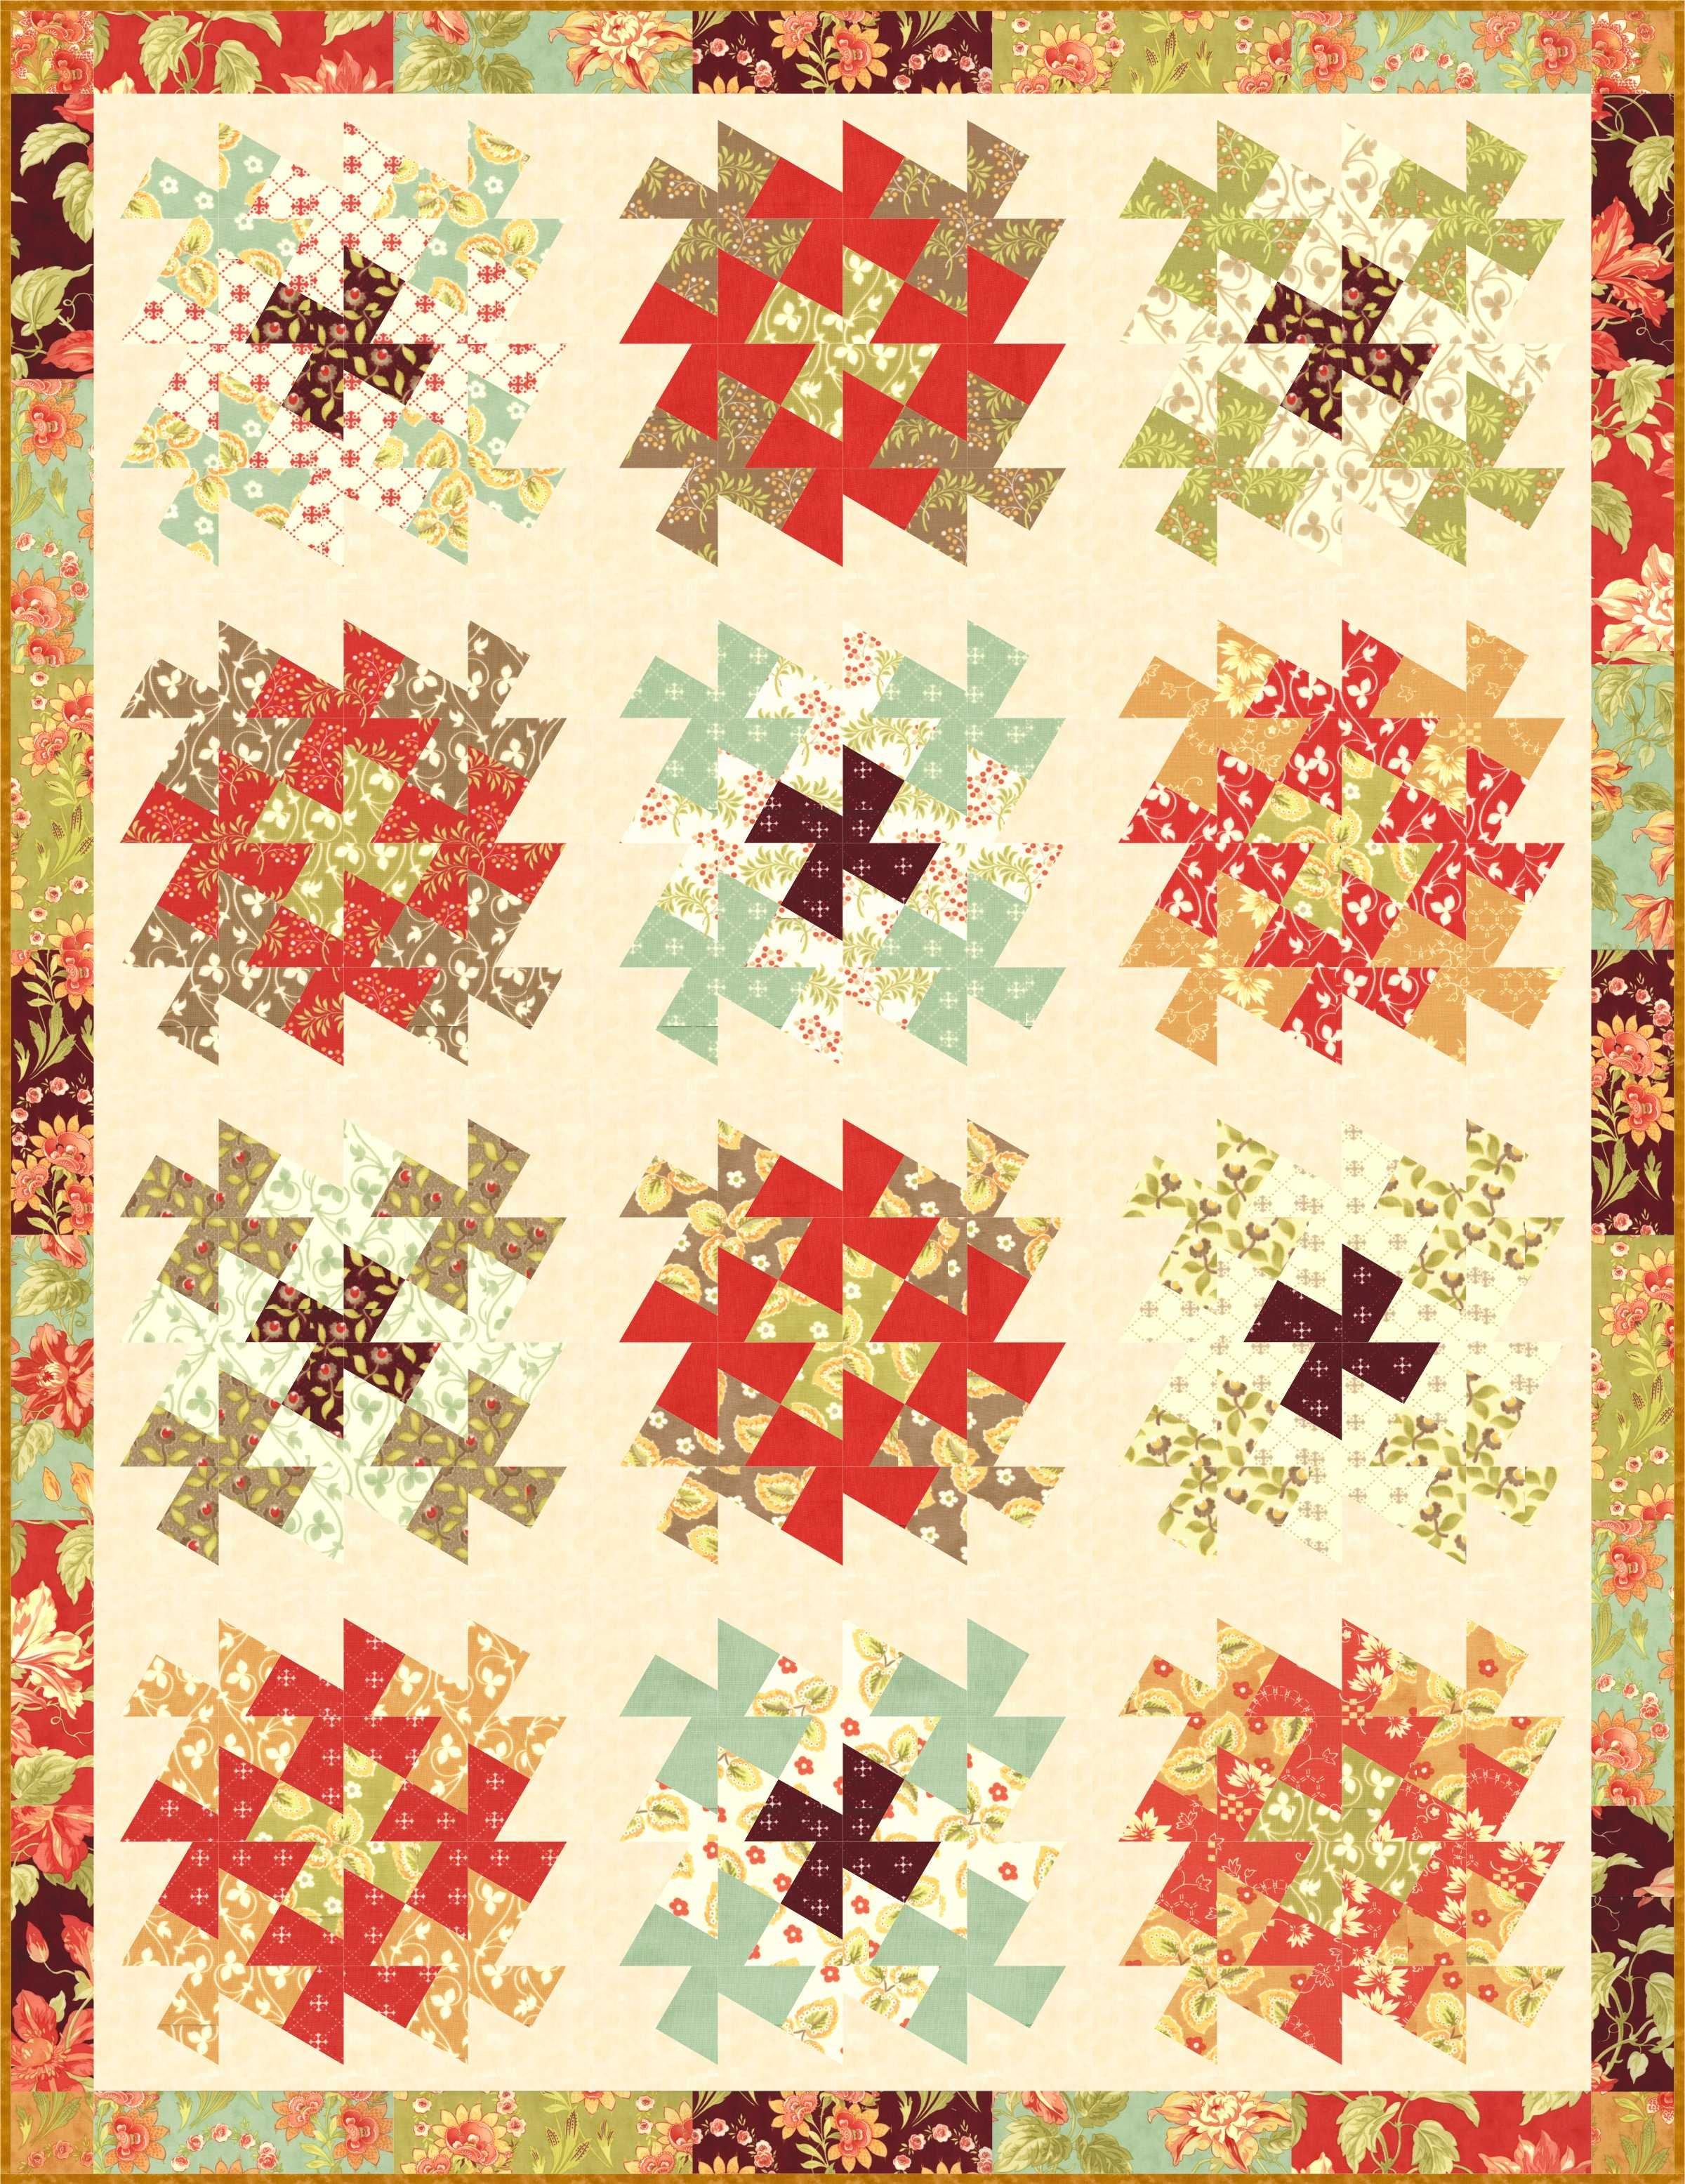 Pinwheel Patterns for Lil' Twister and Twister Tool | Twister ... : twister quilt ruler - Adamdwight.com